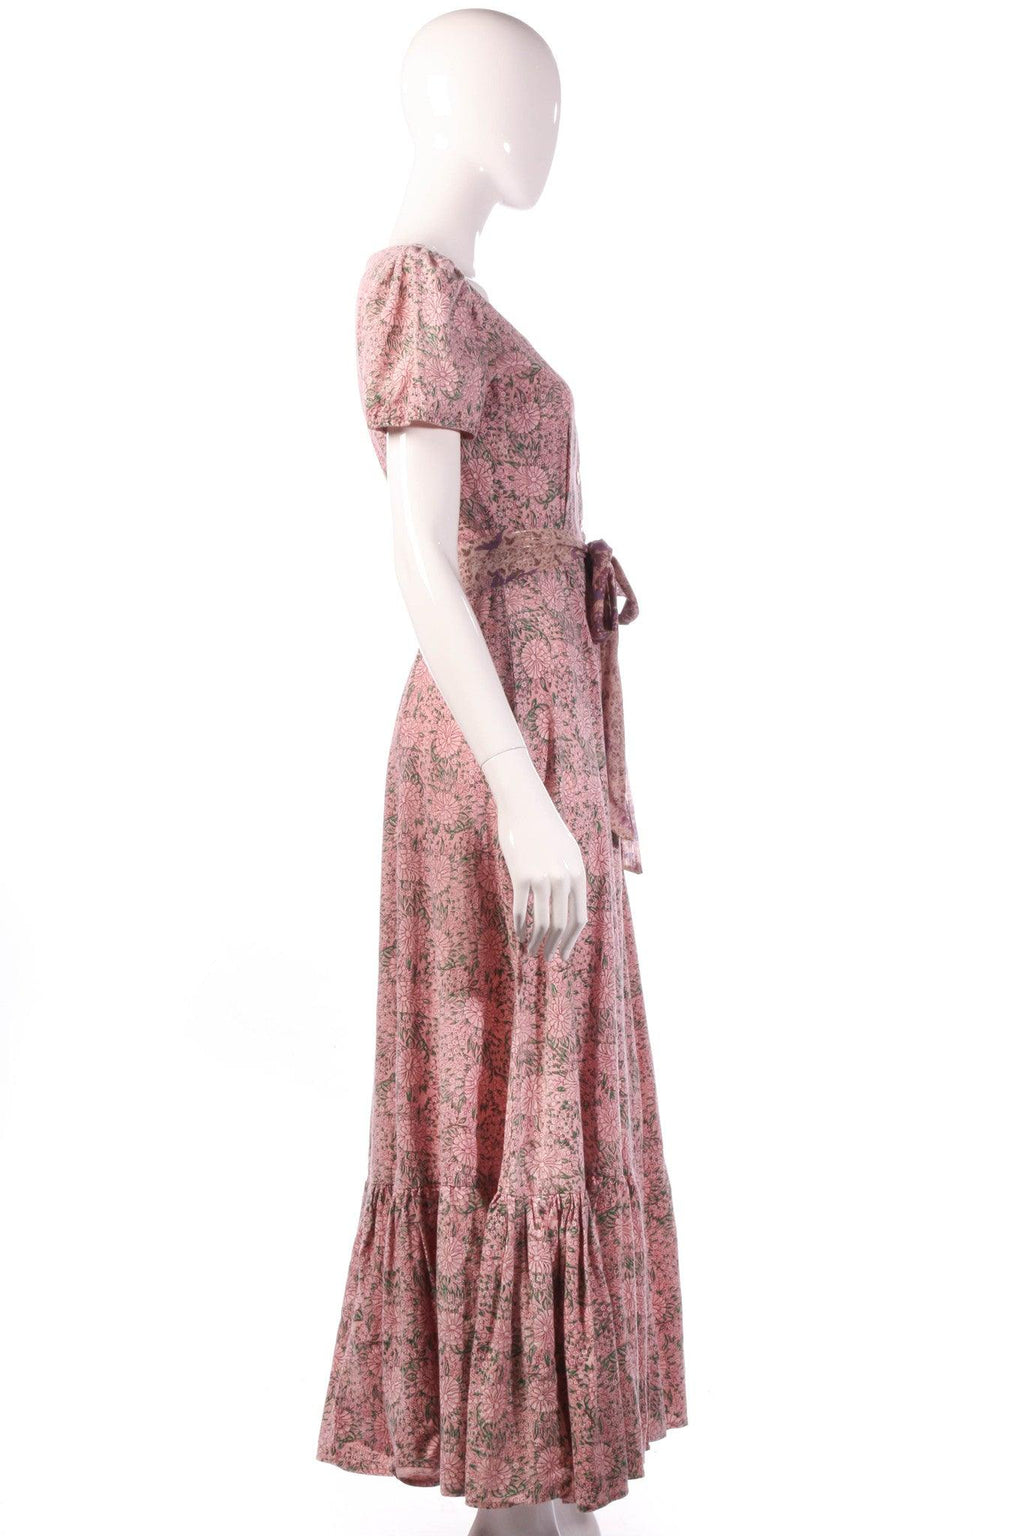 India Imports pink floral dress with tie belt  side